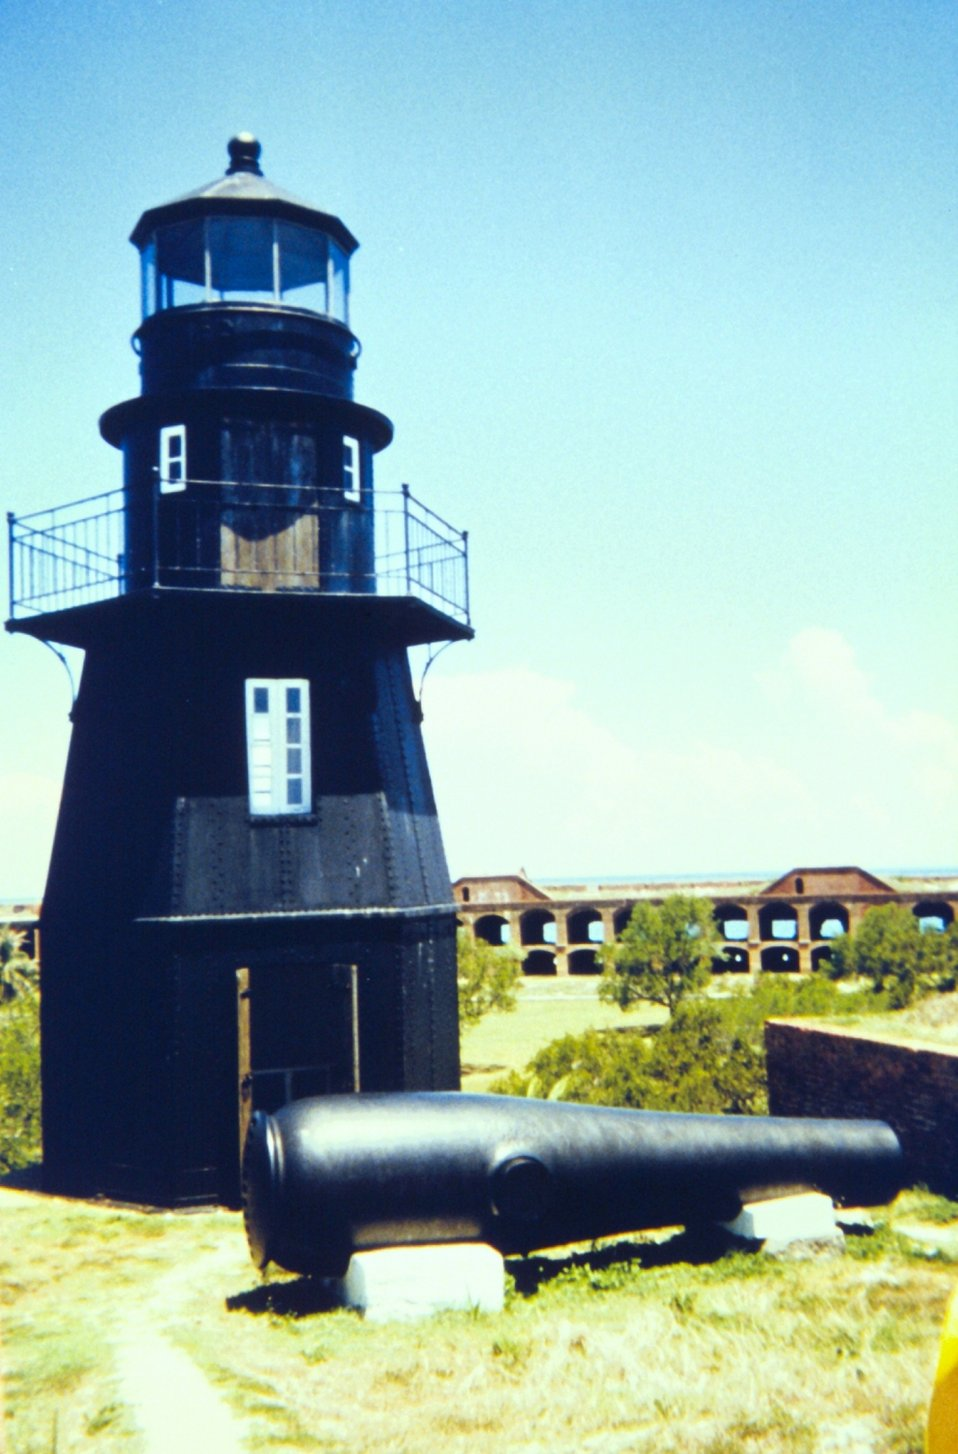 The lighthouse at Fort Jefferson with a Dahlgren cannon